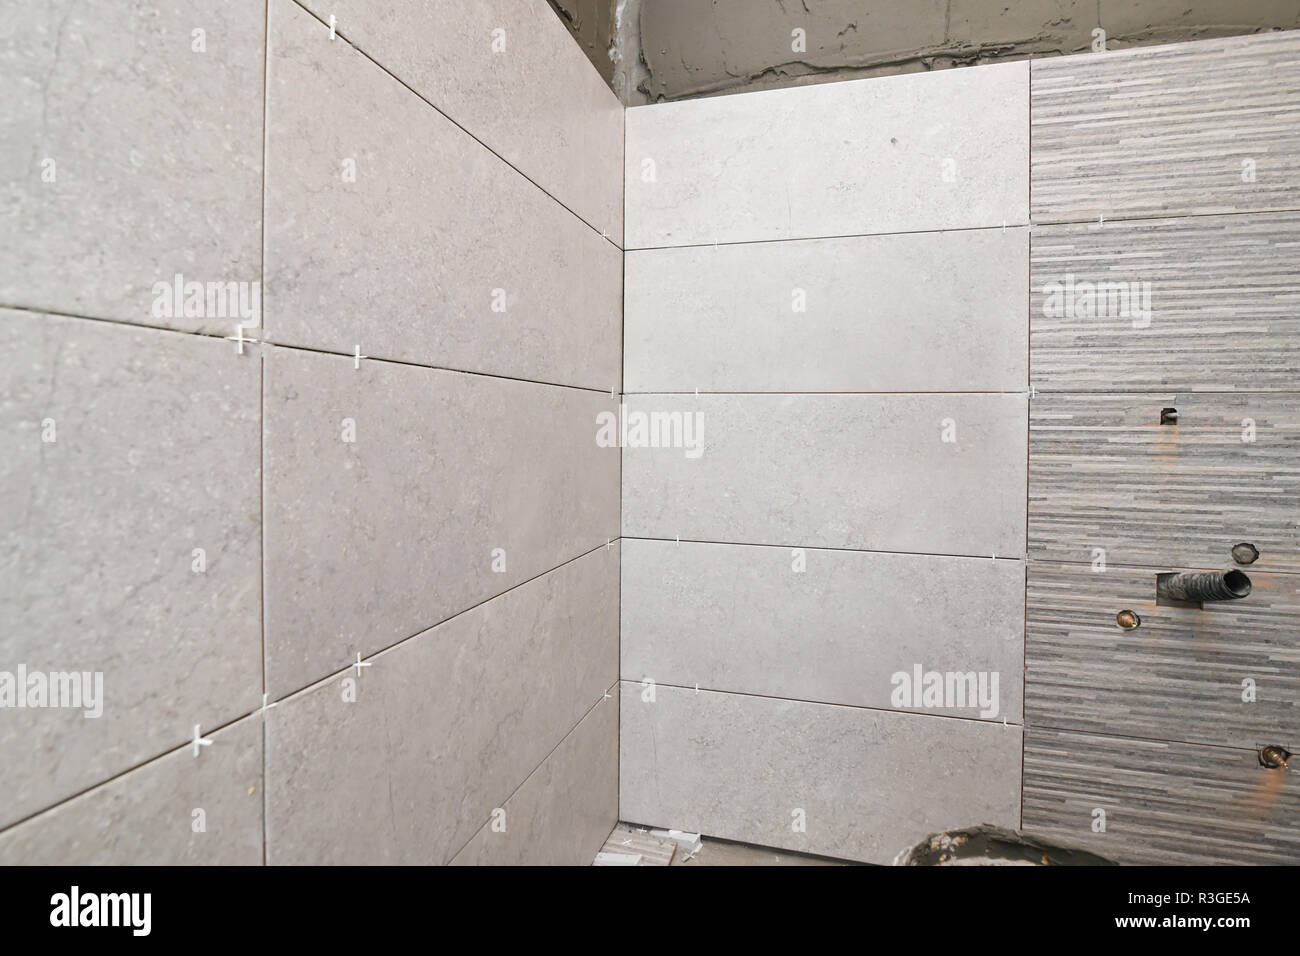 Repair the bathroom. Renovation at home unfinished ceramic tiles with spacers - Stock Image